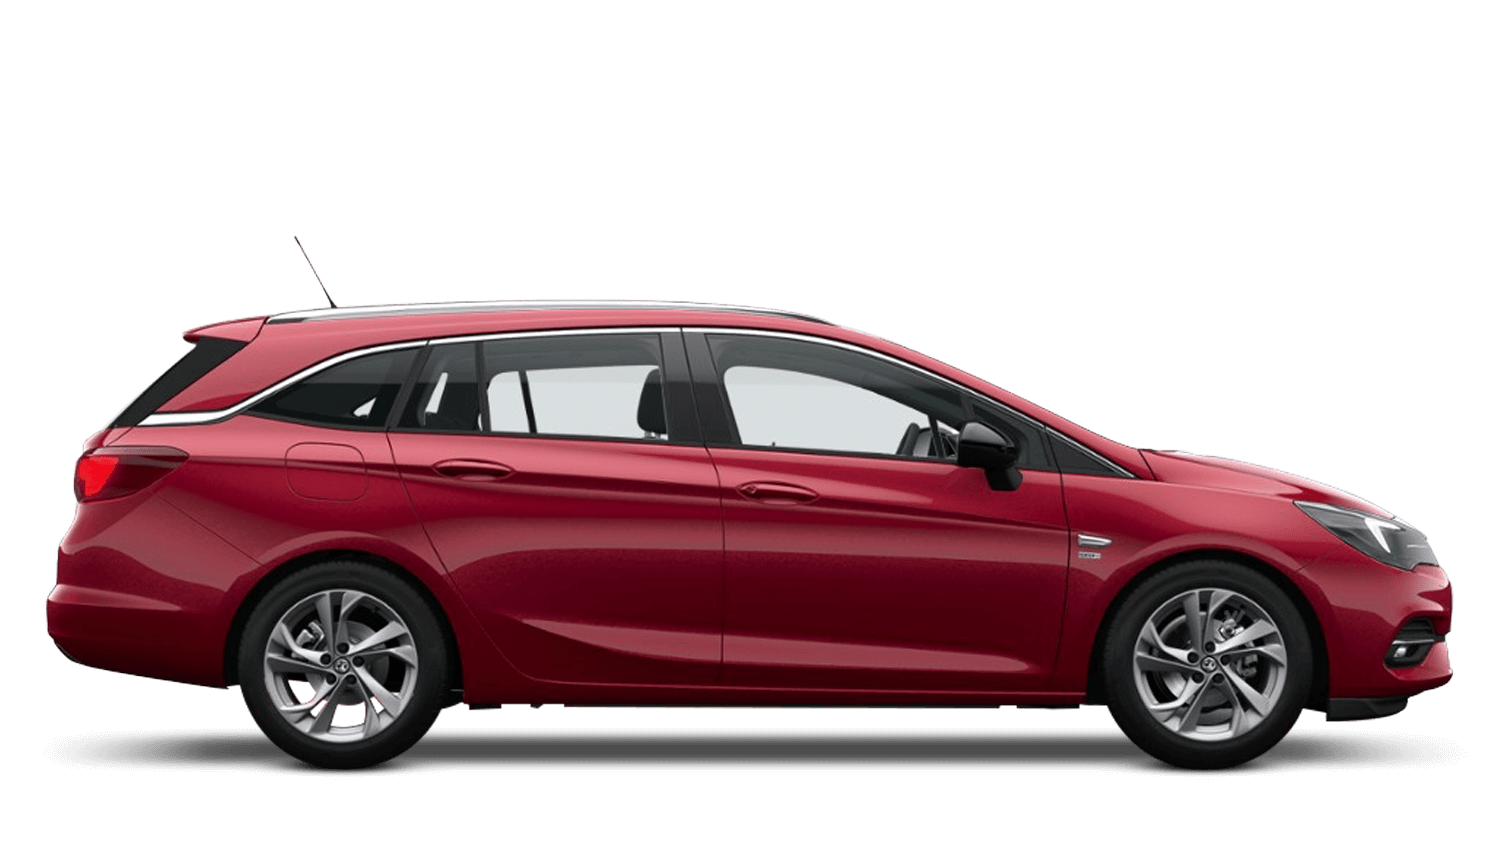 Hot Red New Vauxhall Astra Sports Tourer